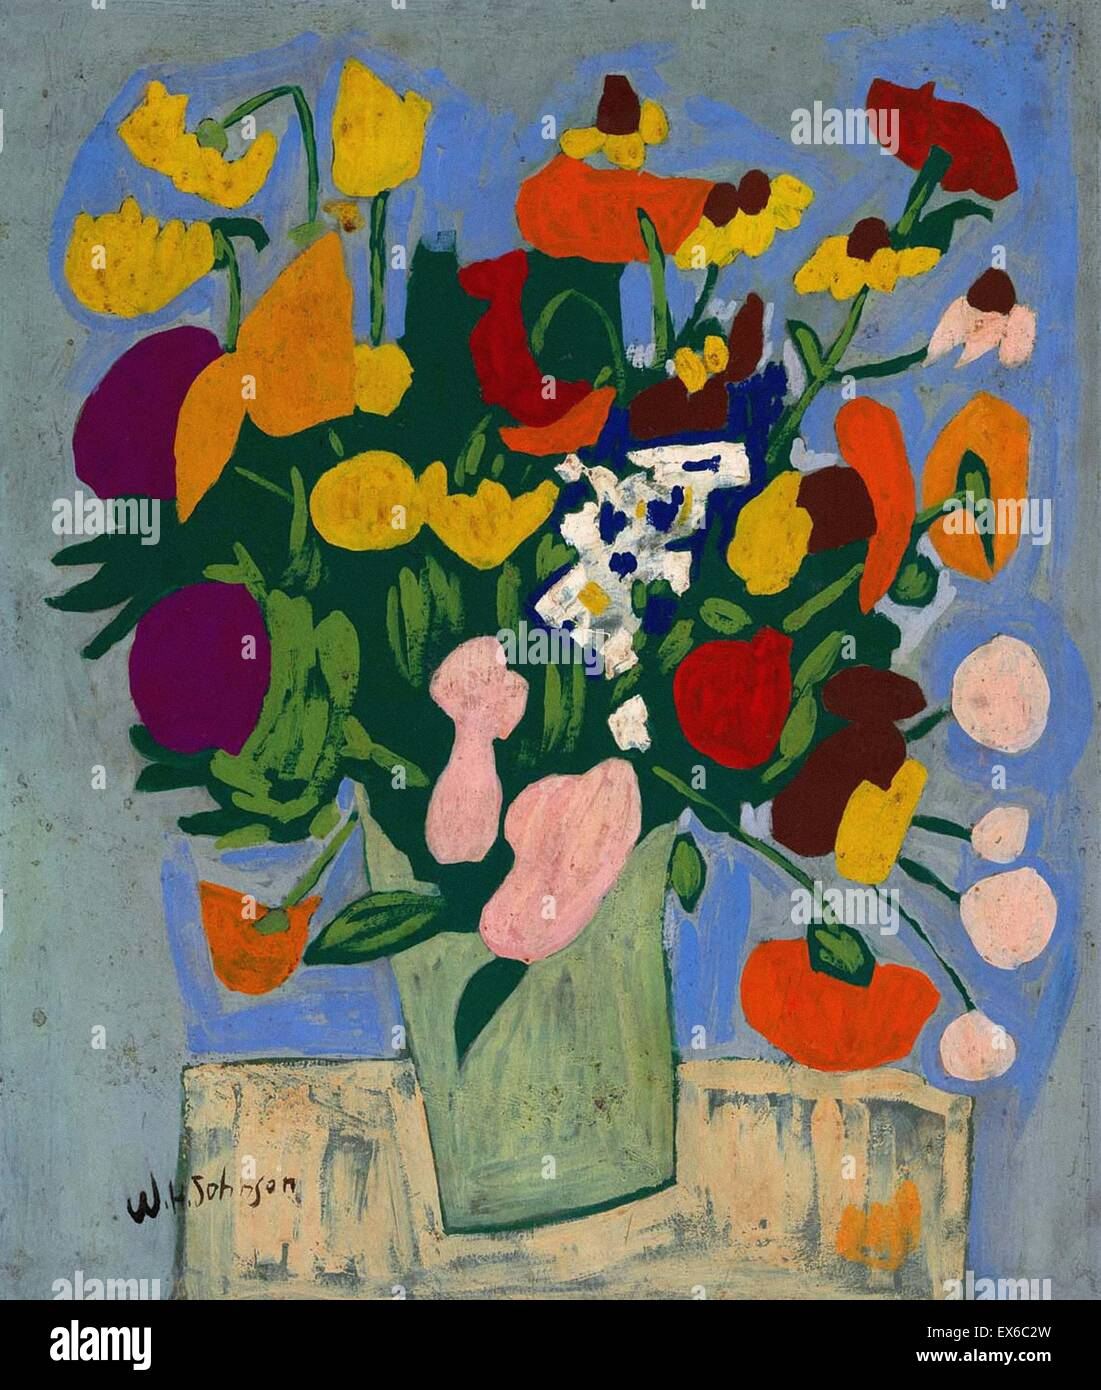 William H. Johnson  Flowers - Stock Image